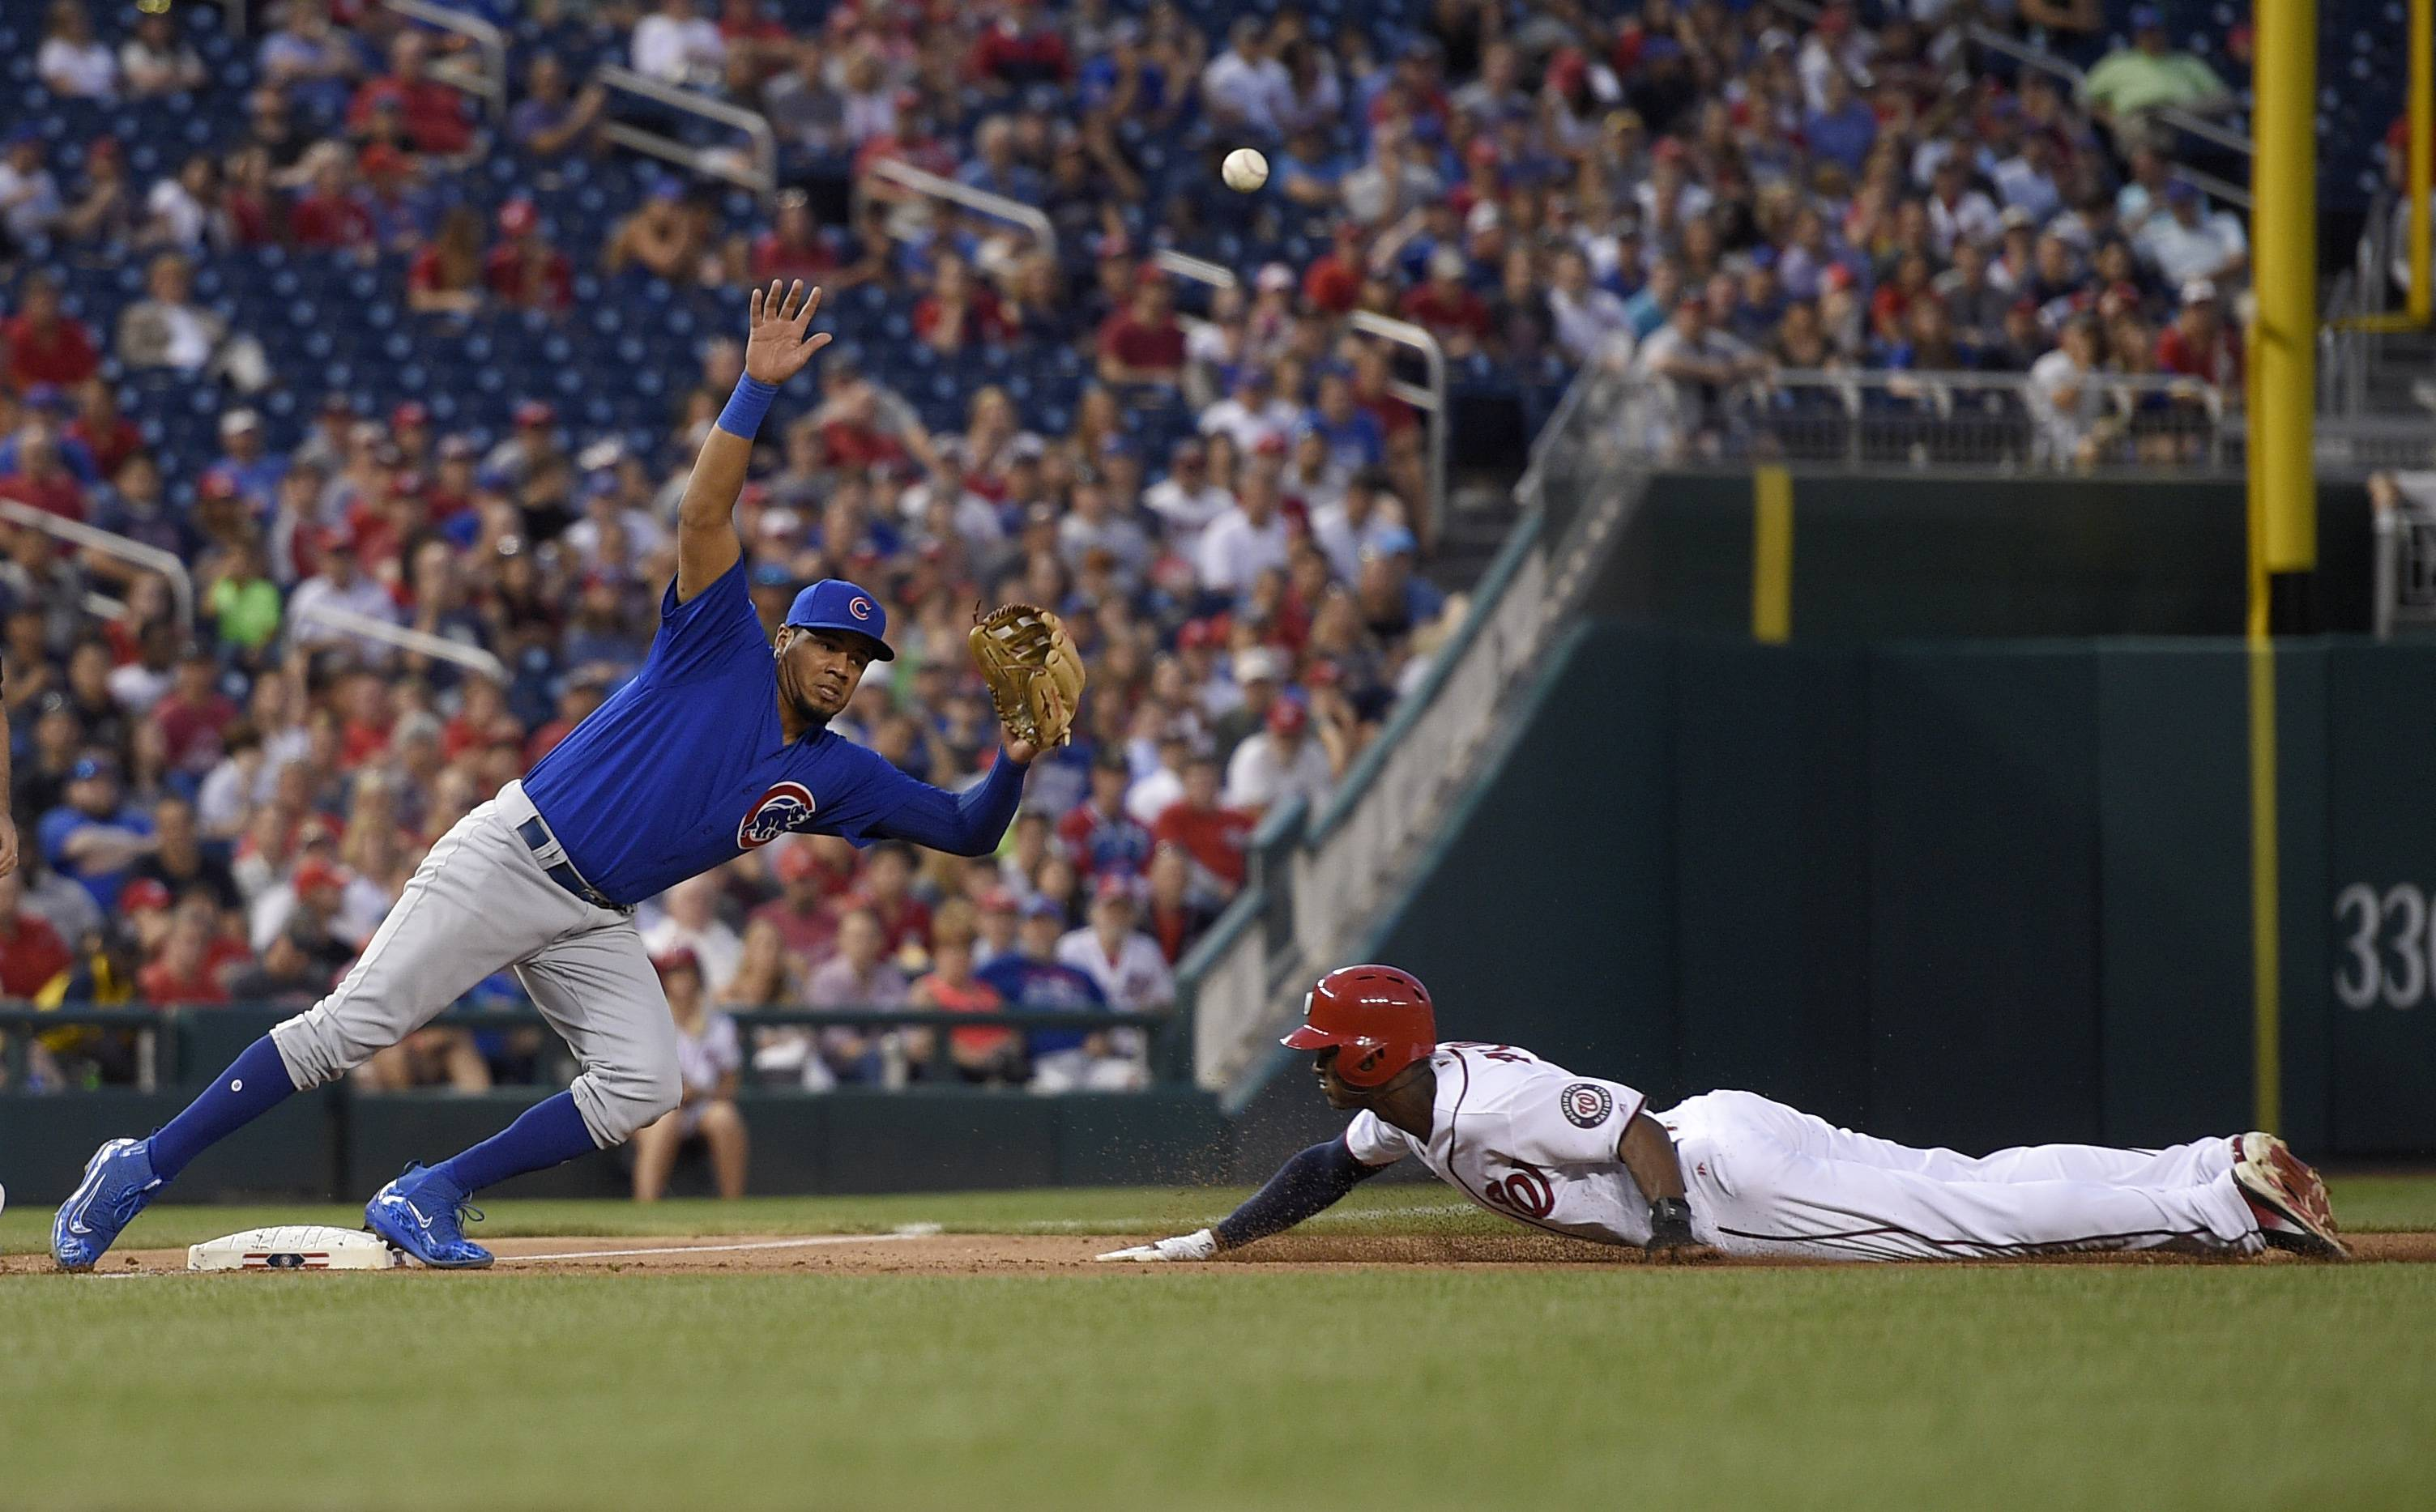 The ball flies past Chicago Cubs third baseman Jeimer Candelario, left, as Washington Nationals' Michael Taylor, right, steals third during the fourth inning of a baseball game, Tuesday, June 27, 2017, in Washington. Taylor went on to score on the play. Chicago Cubs catcher Miguel Montero was charged with a throwing error on the play.(AP Photo/Nick Wass)